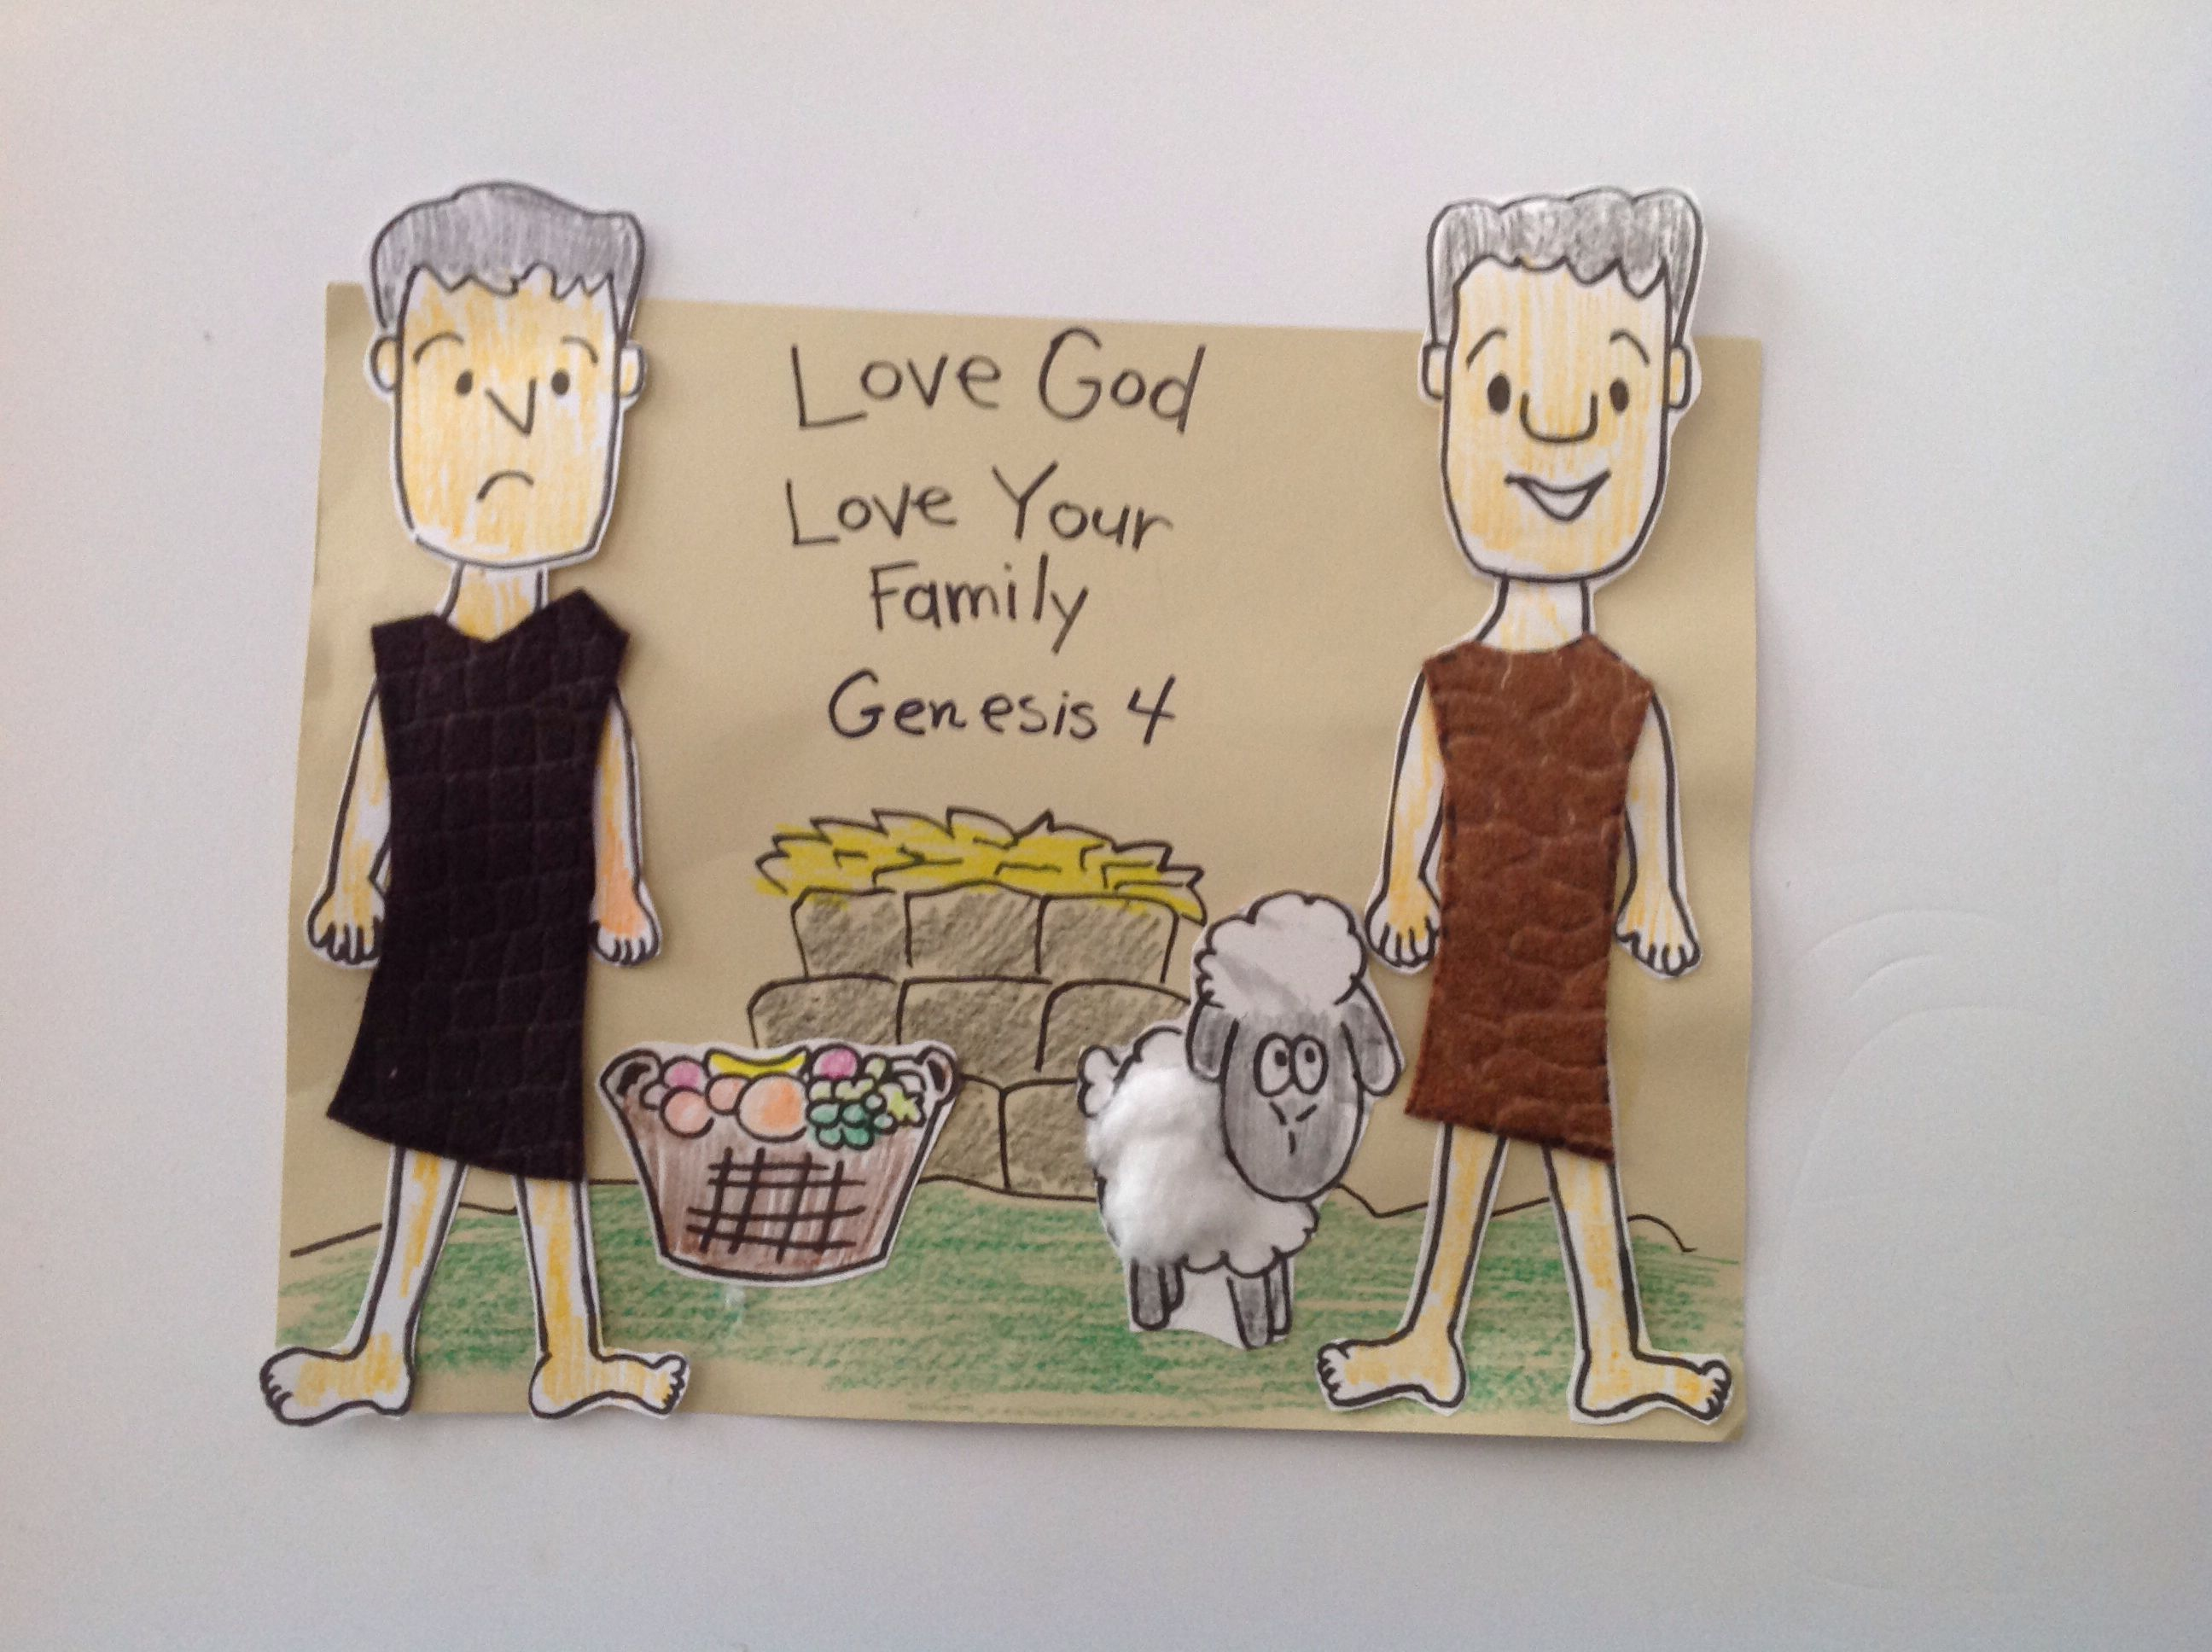 Cain and abel craft ideas - Cain And Abel Craft Idea This Craft Idea Will Help You Prepare Your Sunday School